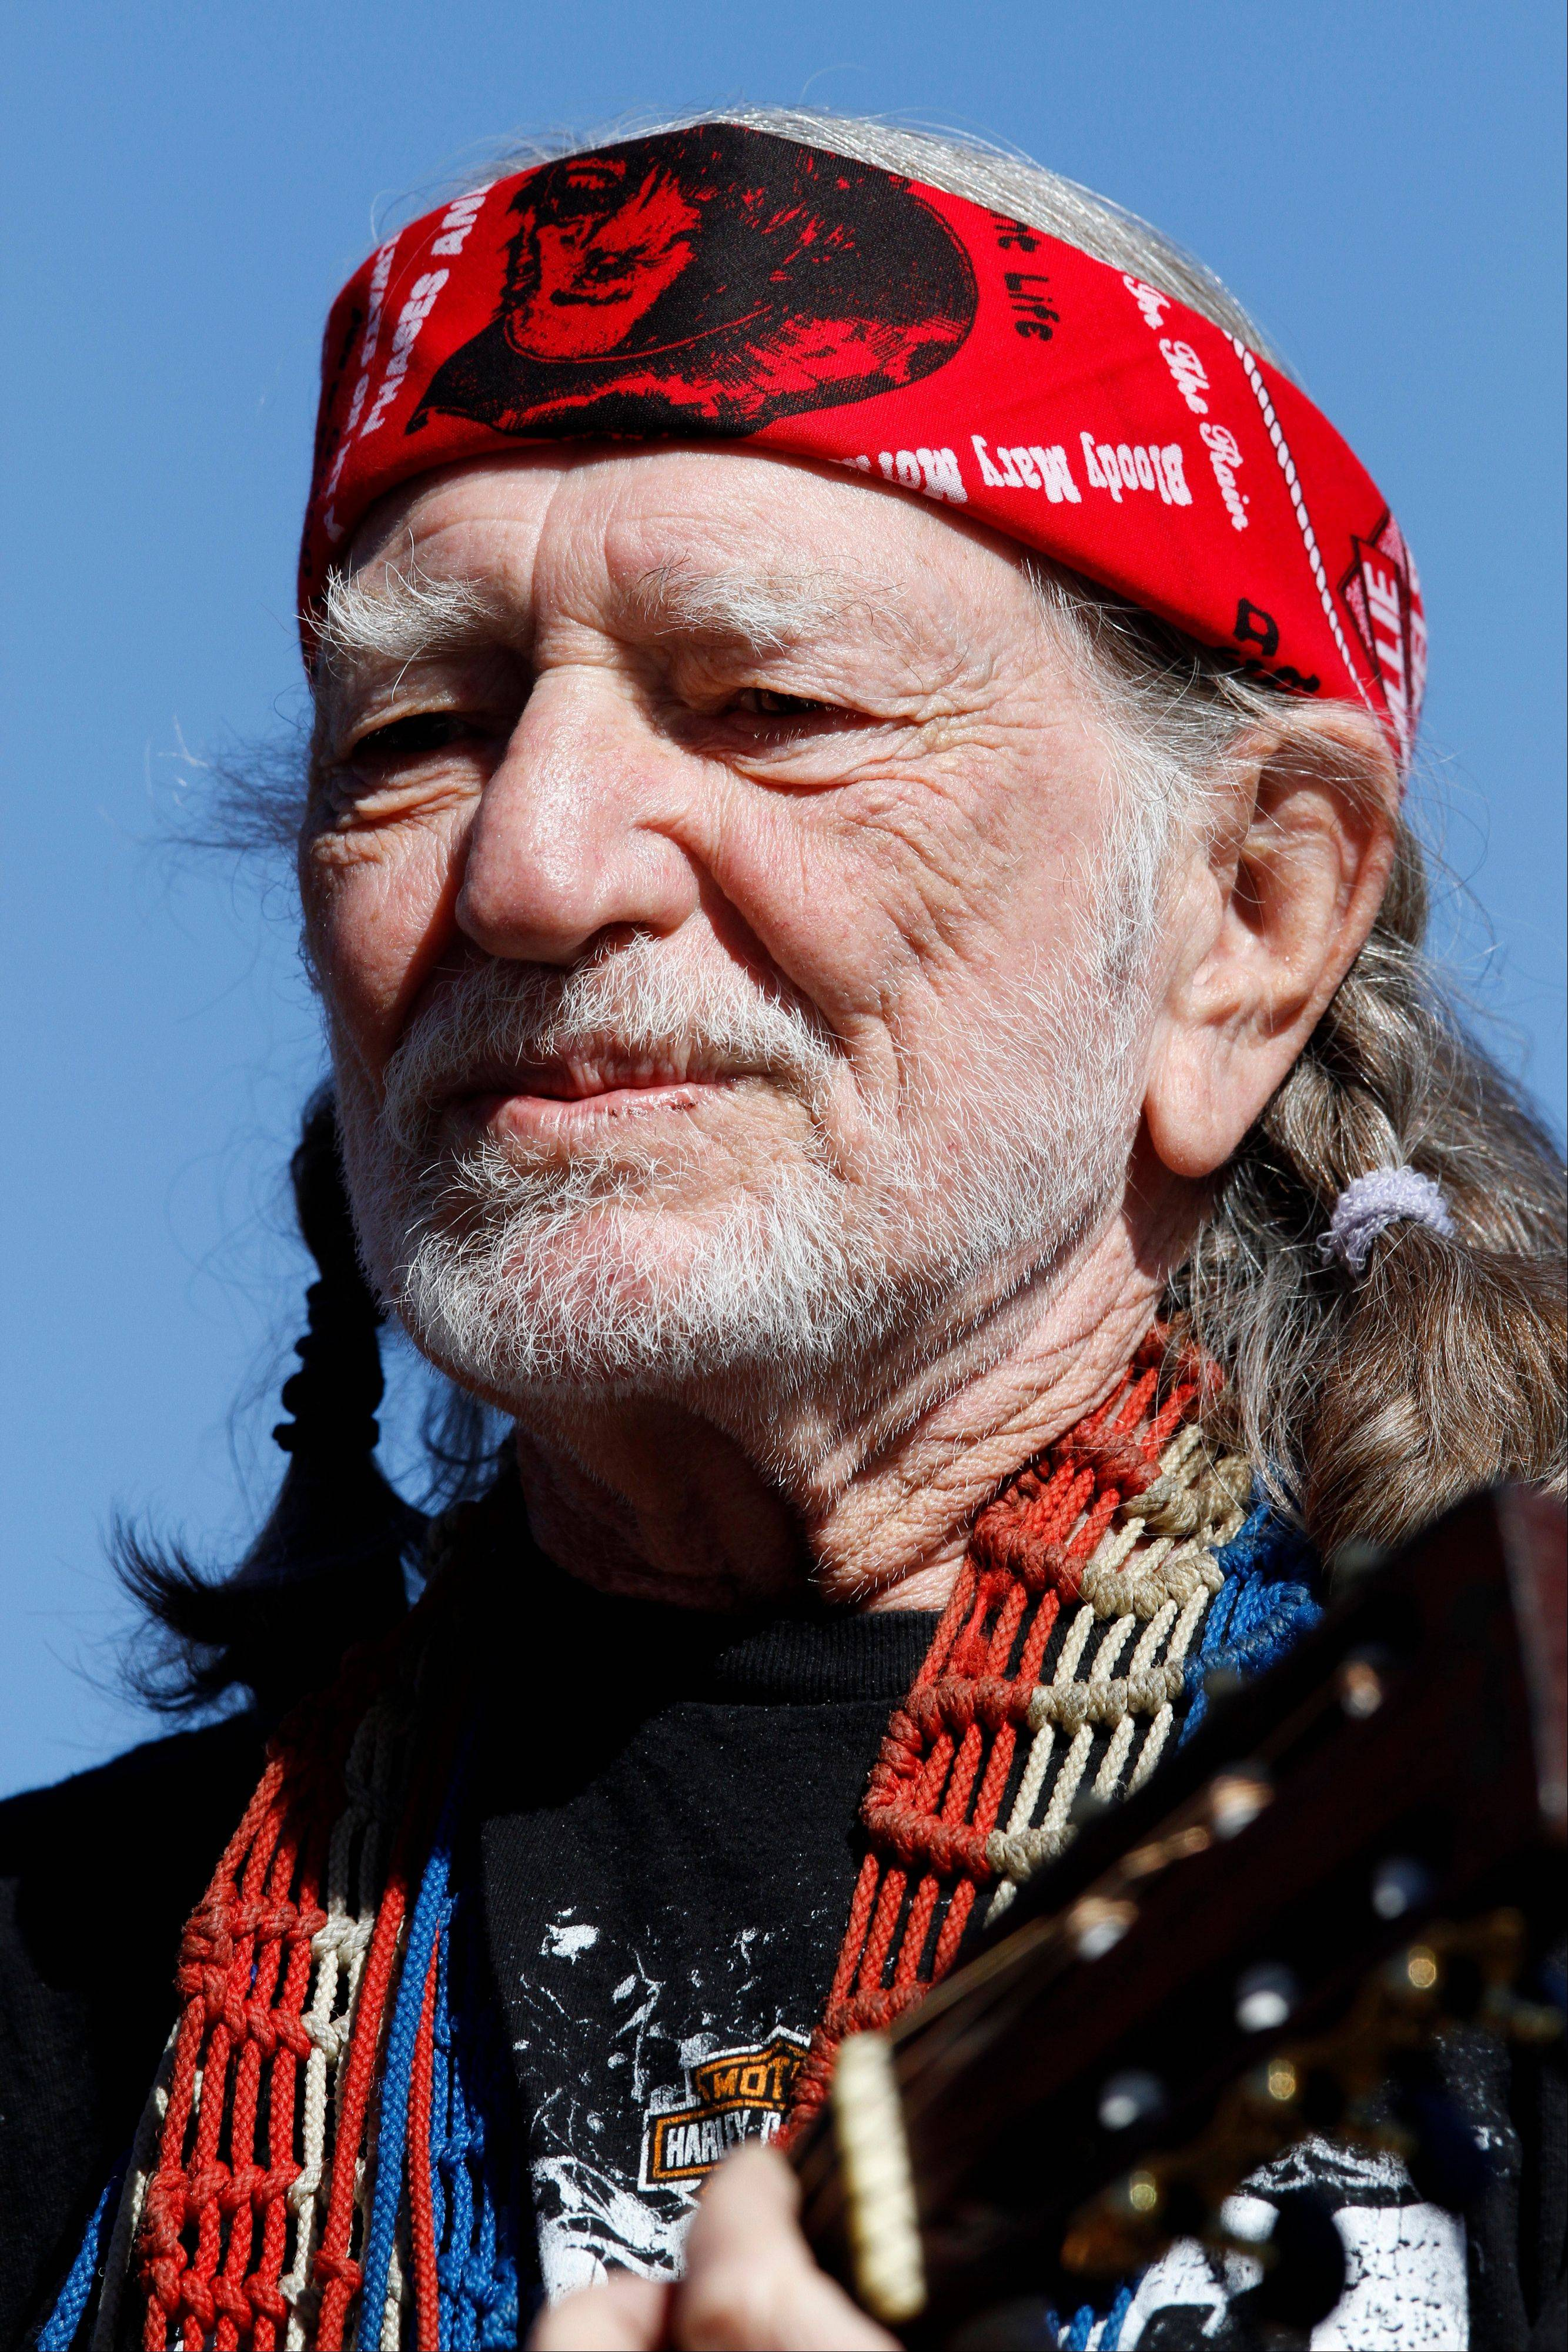 Willie Nelson said Thursday that he will turn an upcoming Texas concert into a benefit for victims of the explosion at a fertilizer plant in West, Texas, not far from where he grew up.